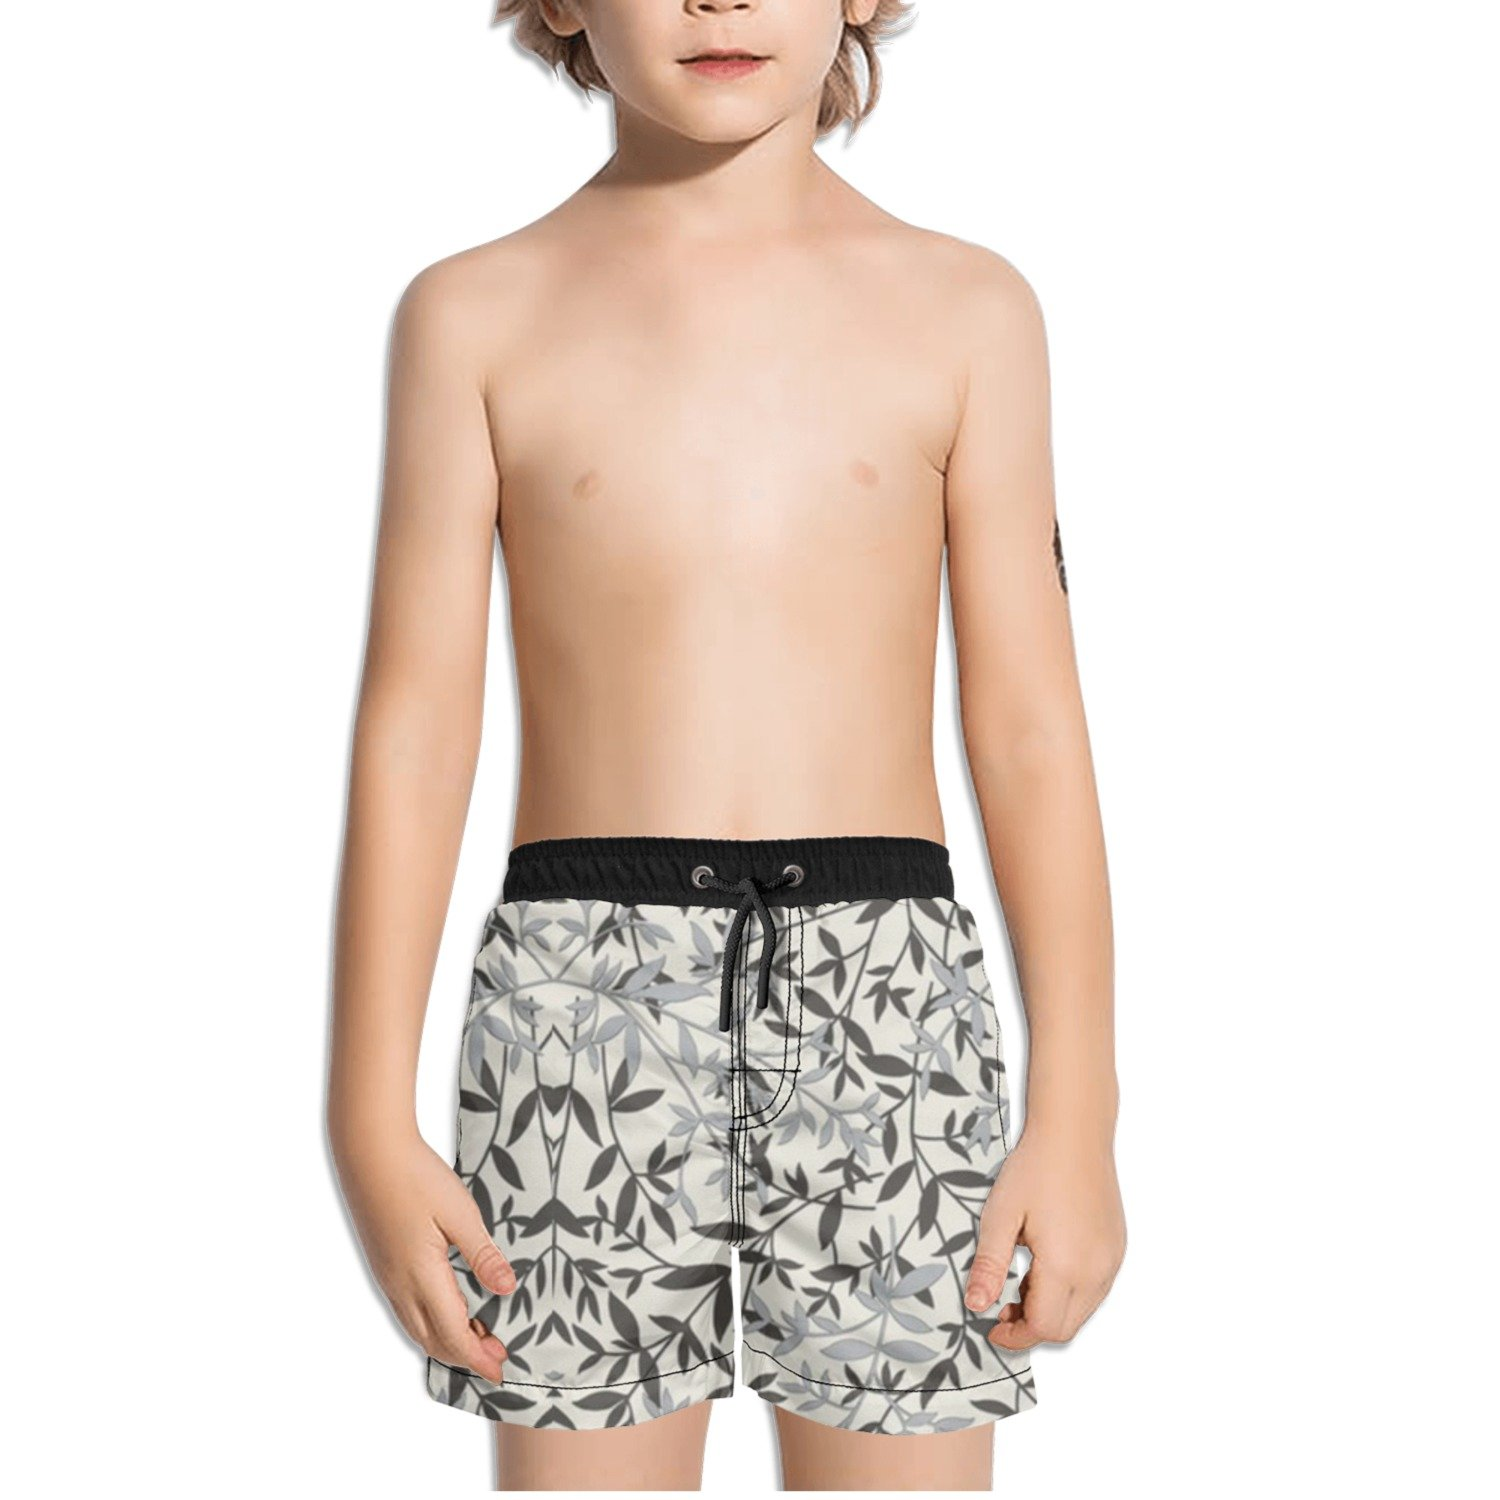 Ouxioaz Boys Swim Trunk Grey Leaves Beach Board Shorts